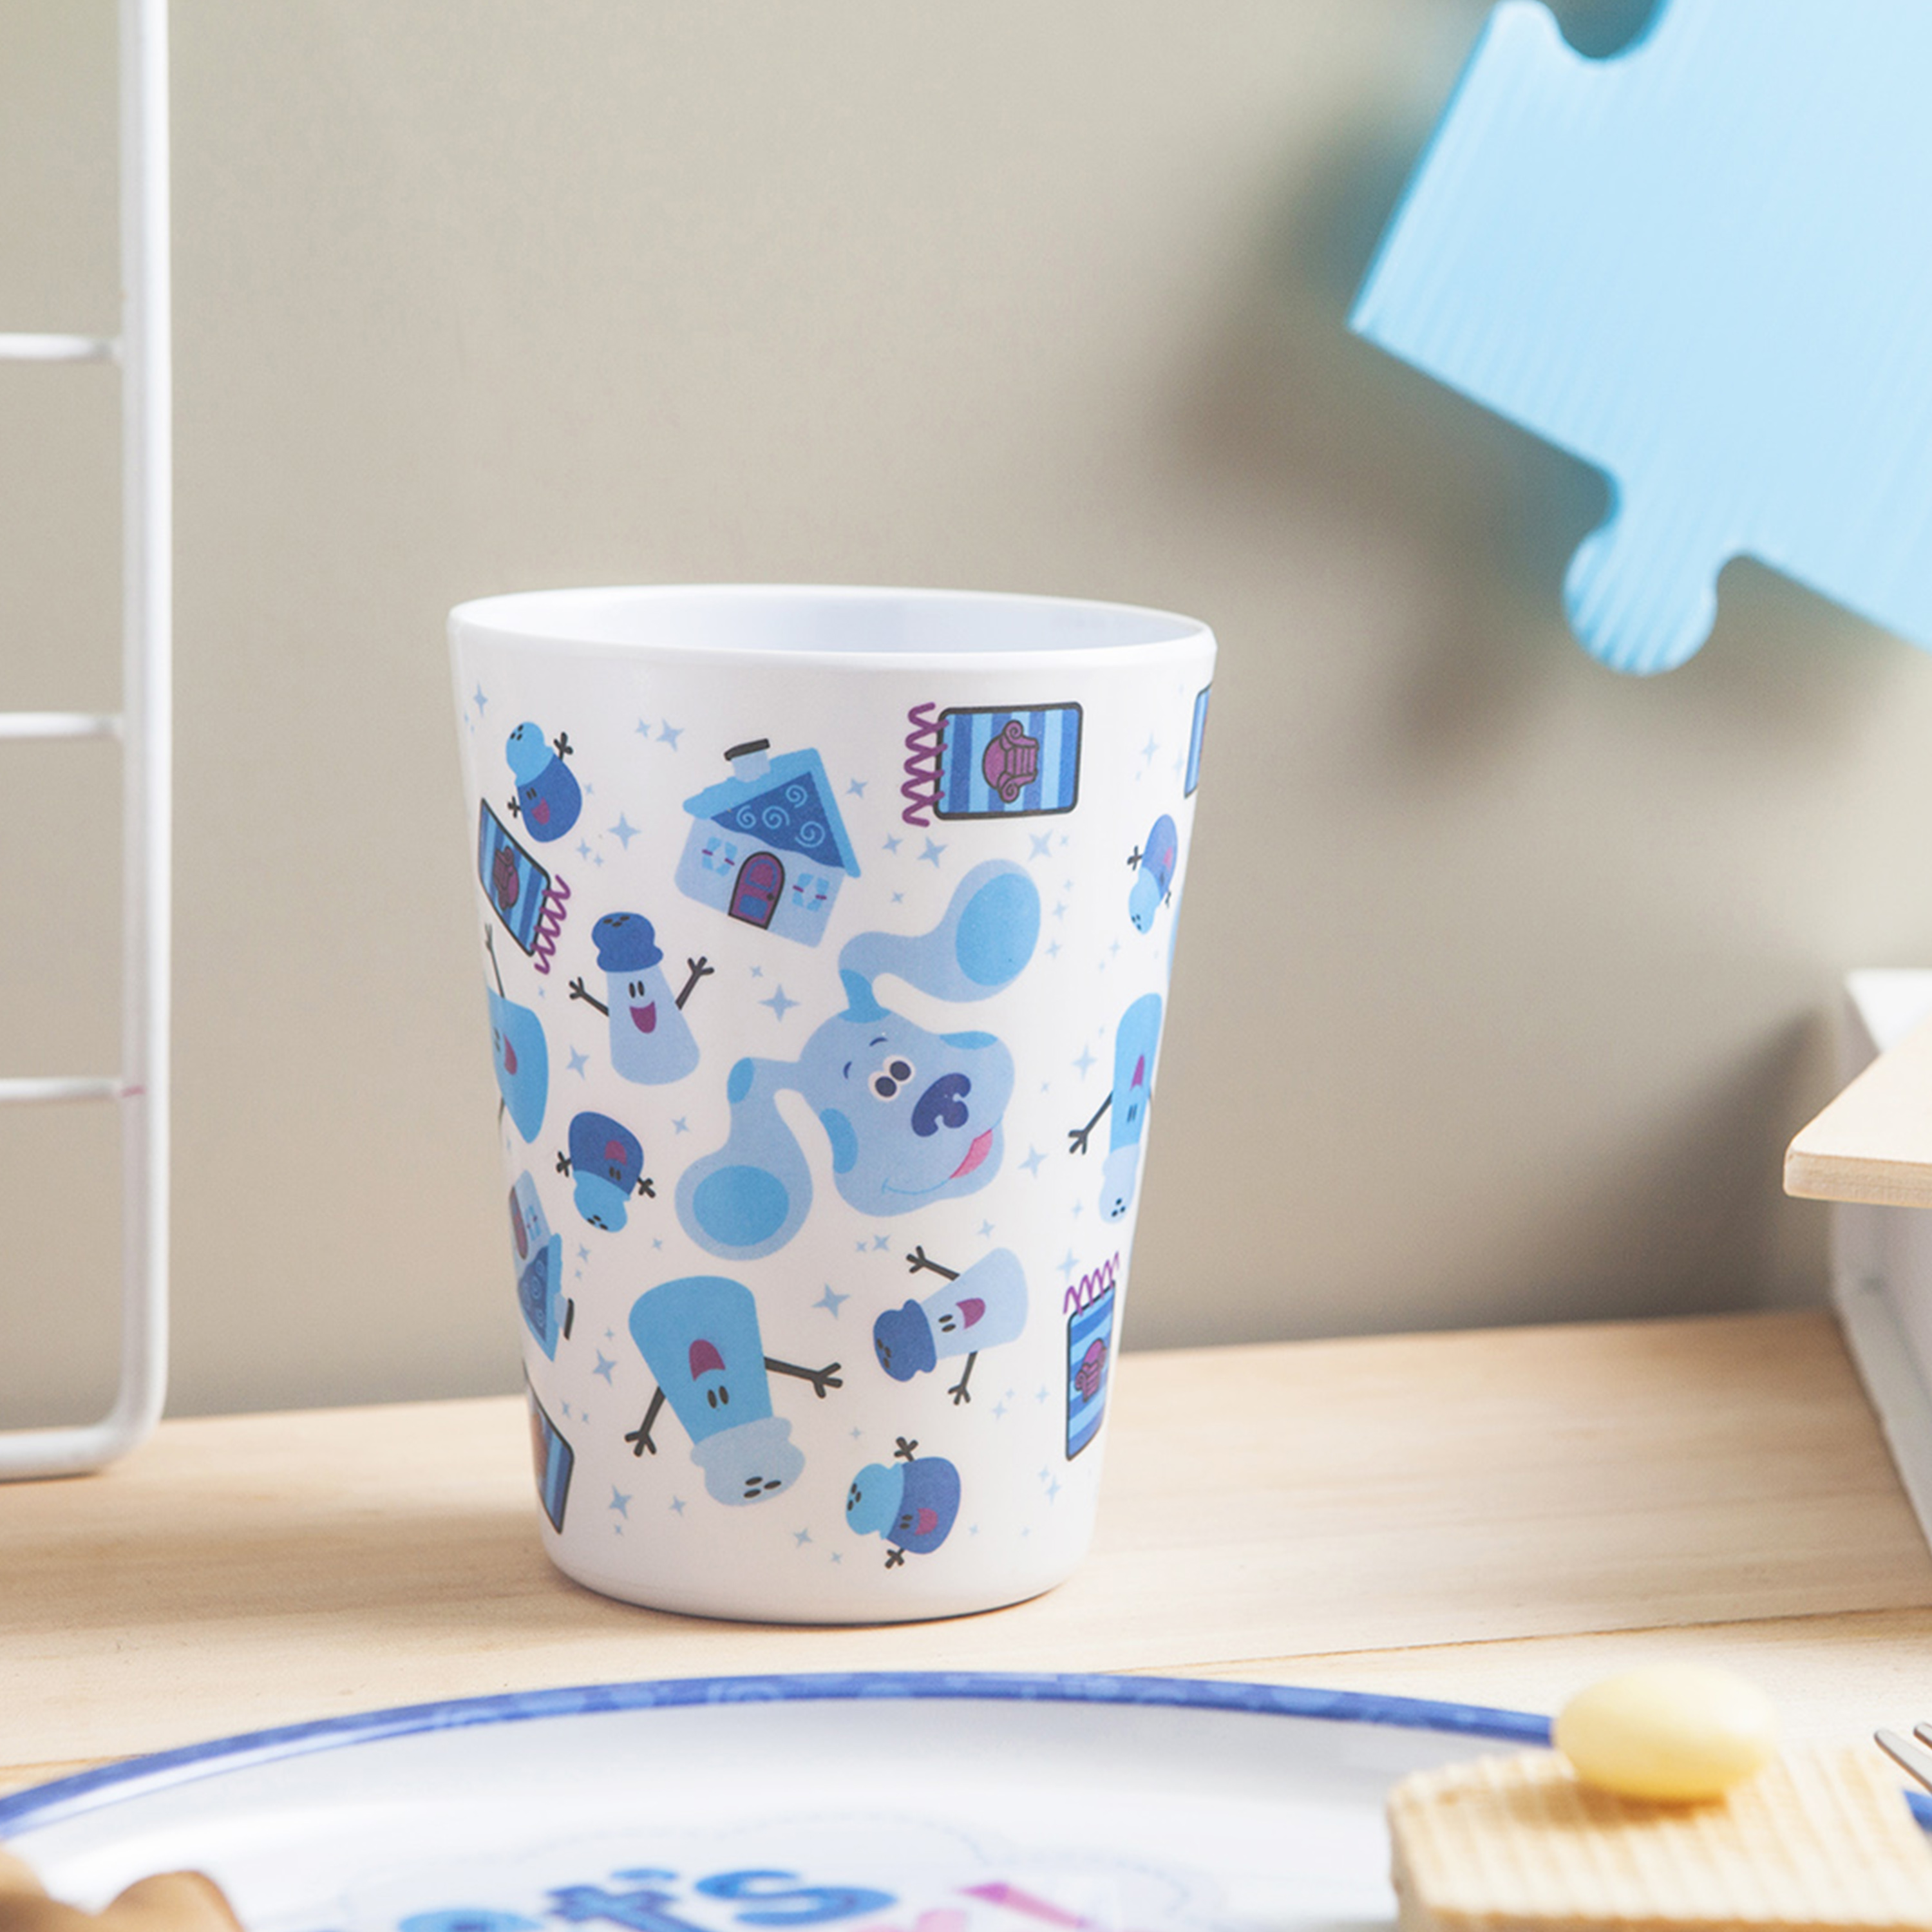 Blues Clues and You Kids Dinner Set, Blue and Friends, 5-piece set slideshow image 4